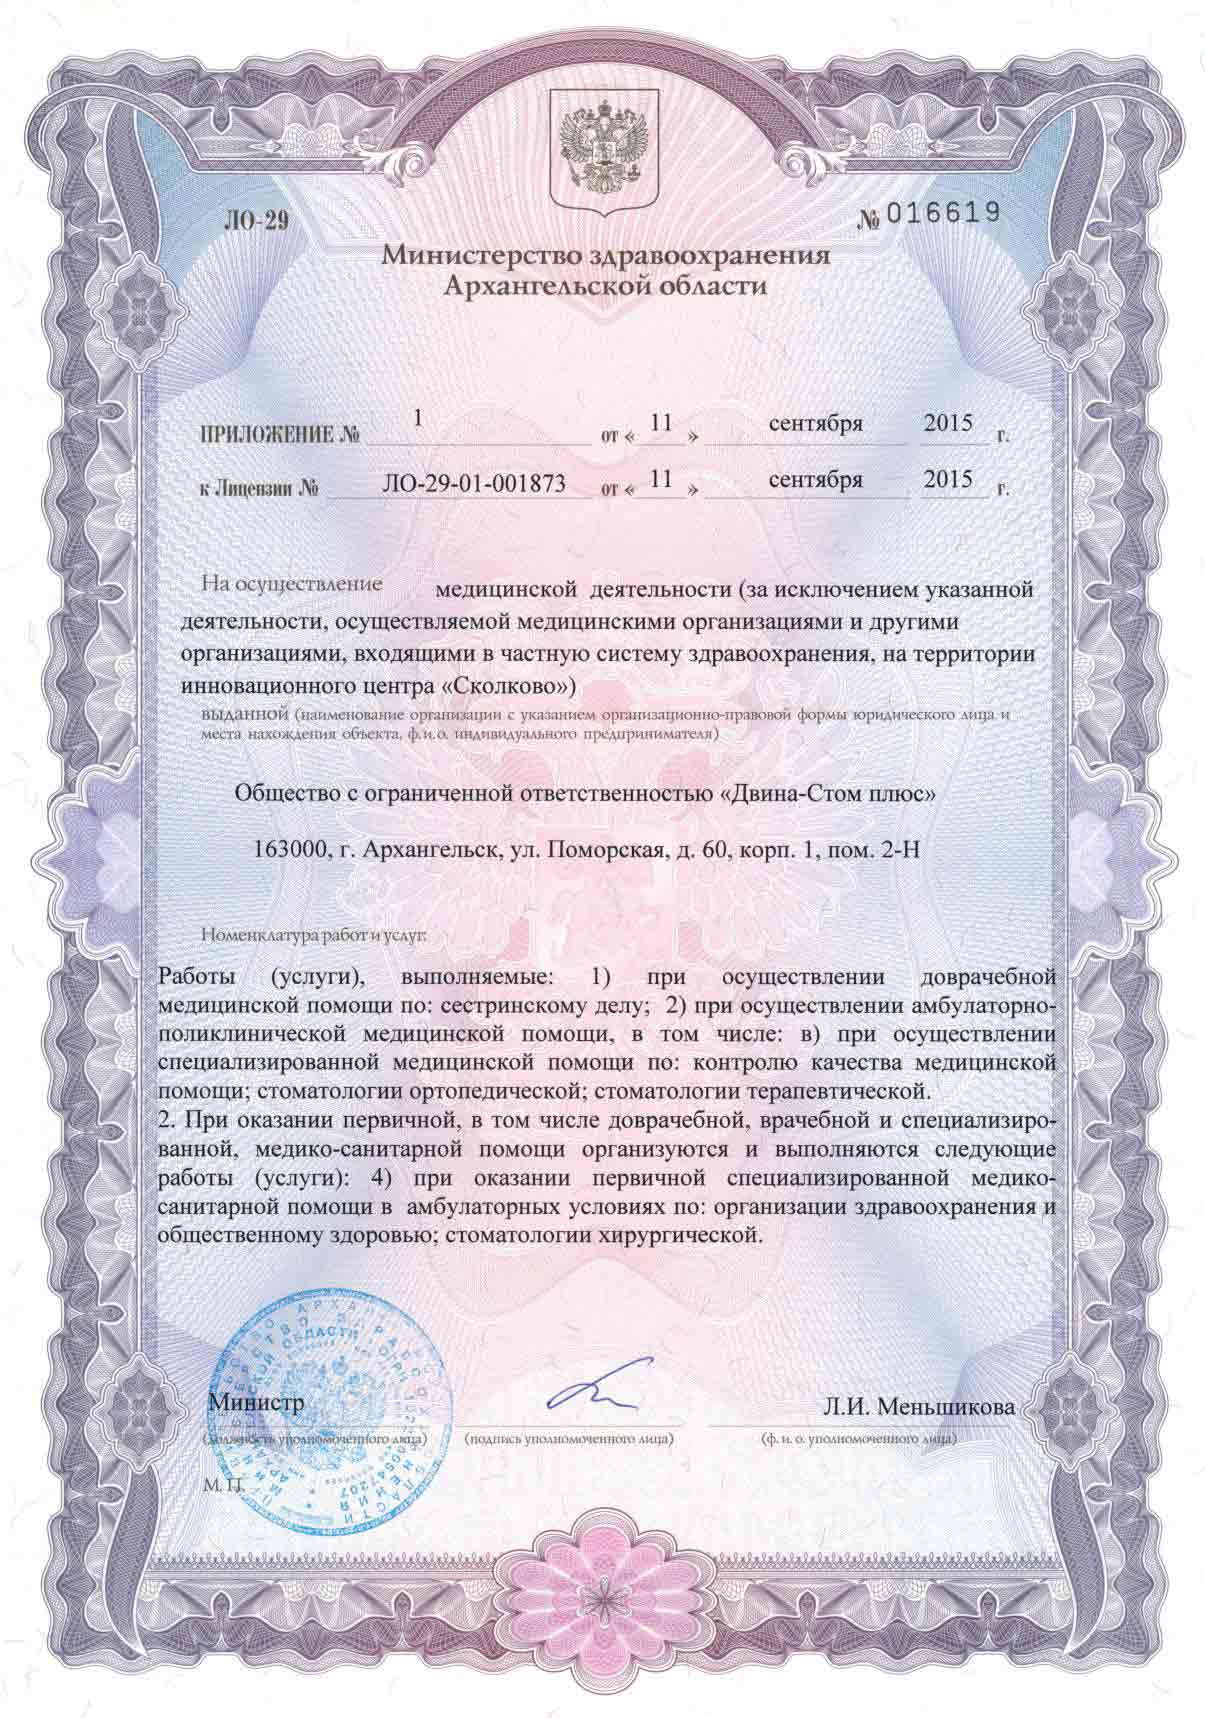 NewLicense-page-003.jpg